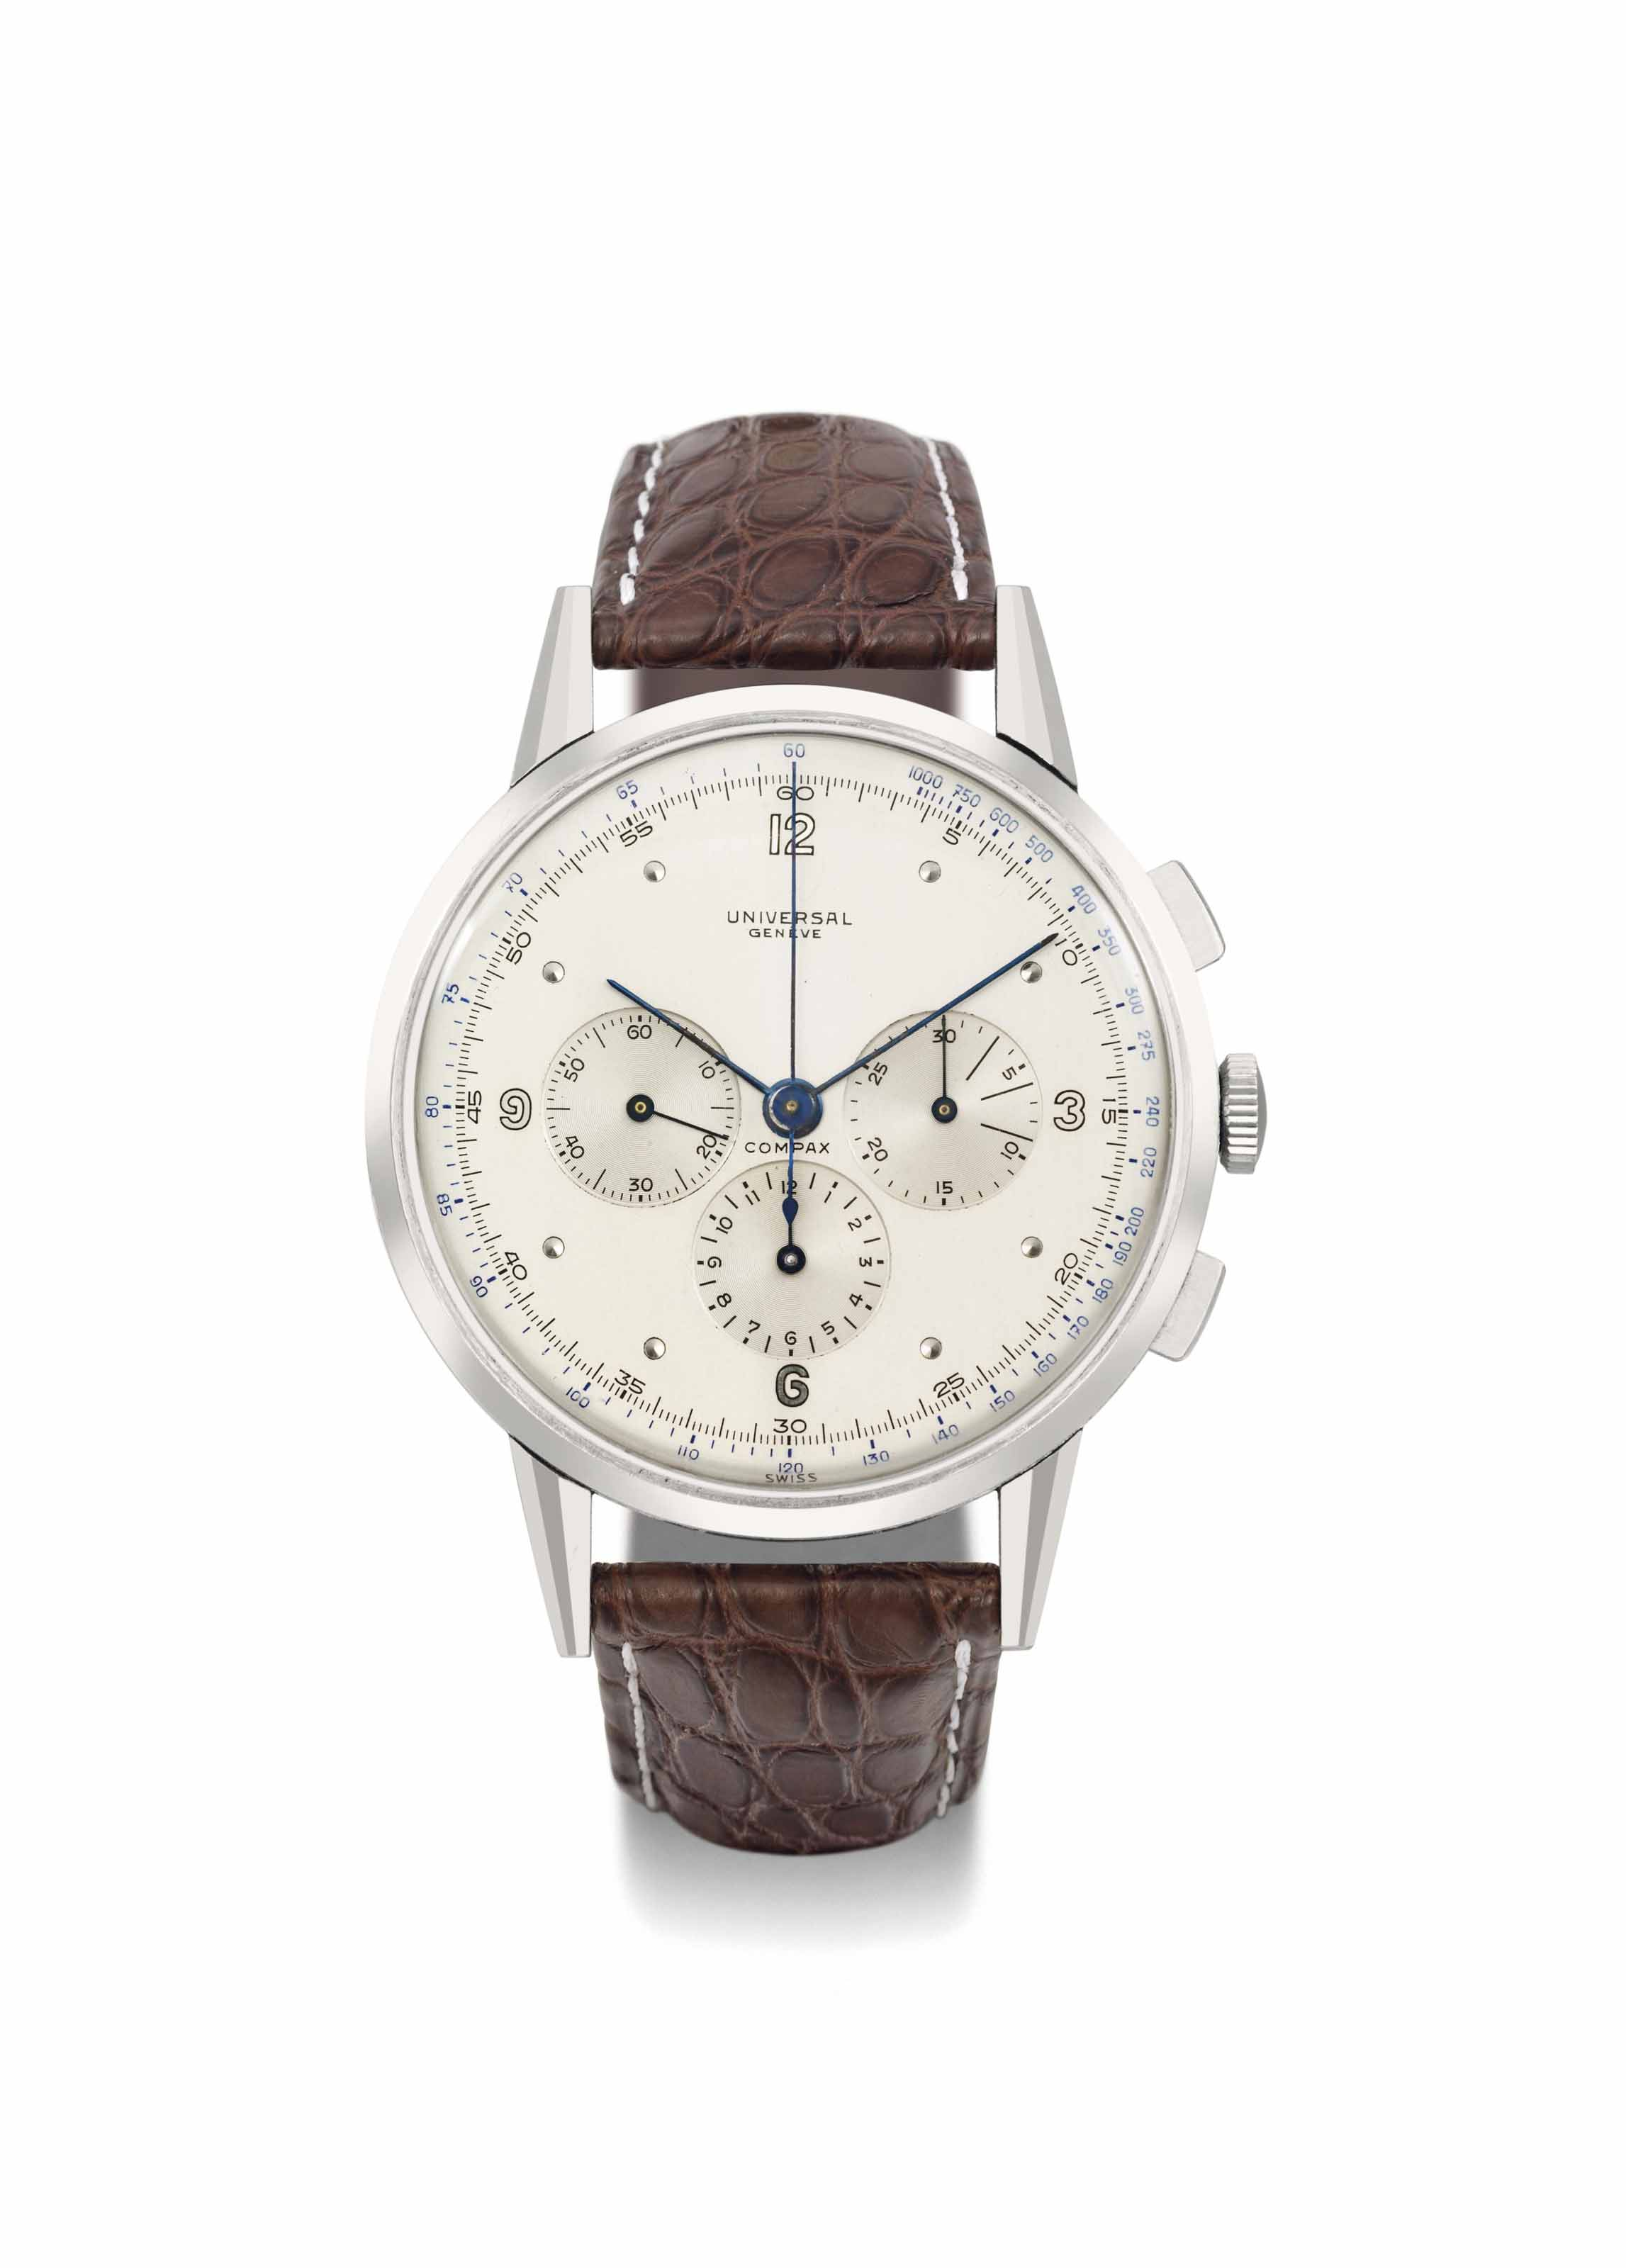 Universal. A highly rare and unusual oversized stainless steel chronograph wristwatch with two-toned silvered dial